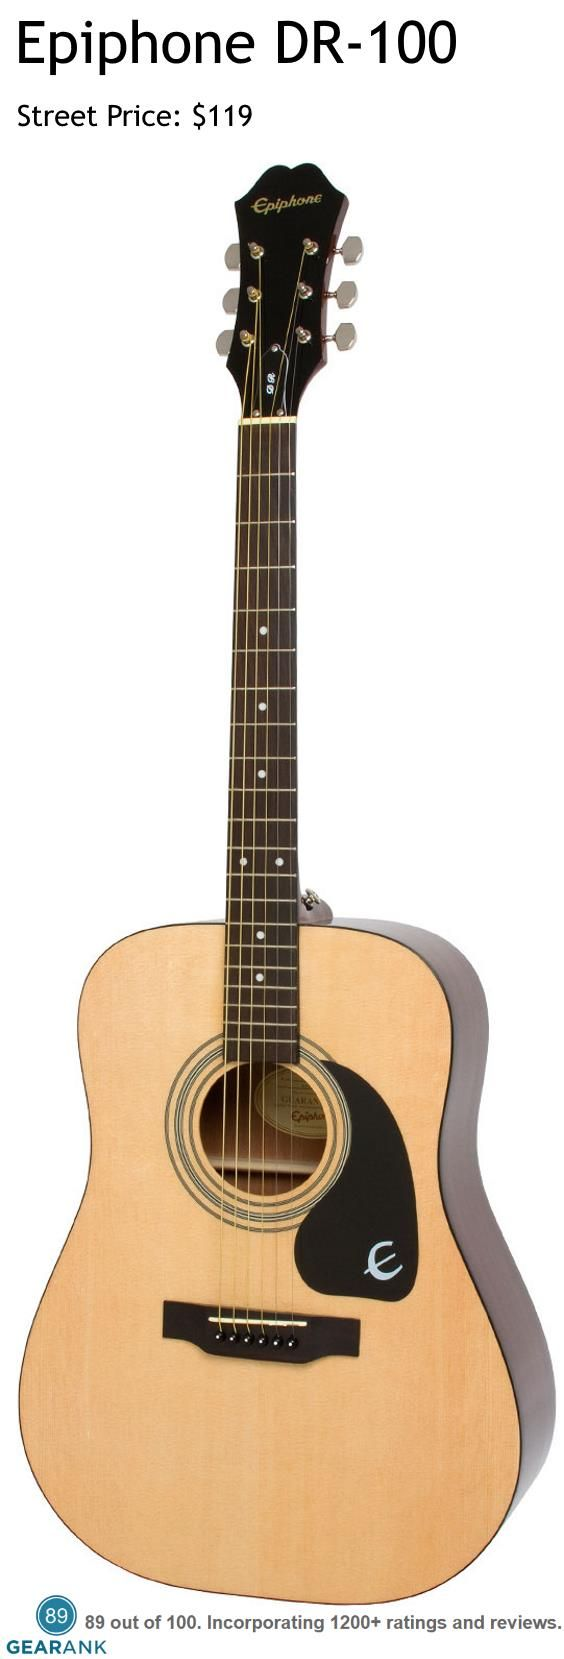 Epiphone DR-100. This is Epiphone's top selling acoustic guitar and is also one of the highest rated acoustic guitars under $200.